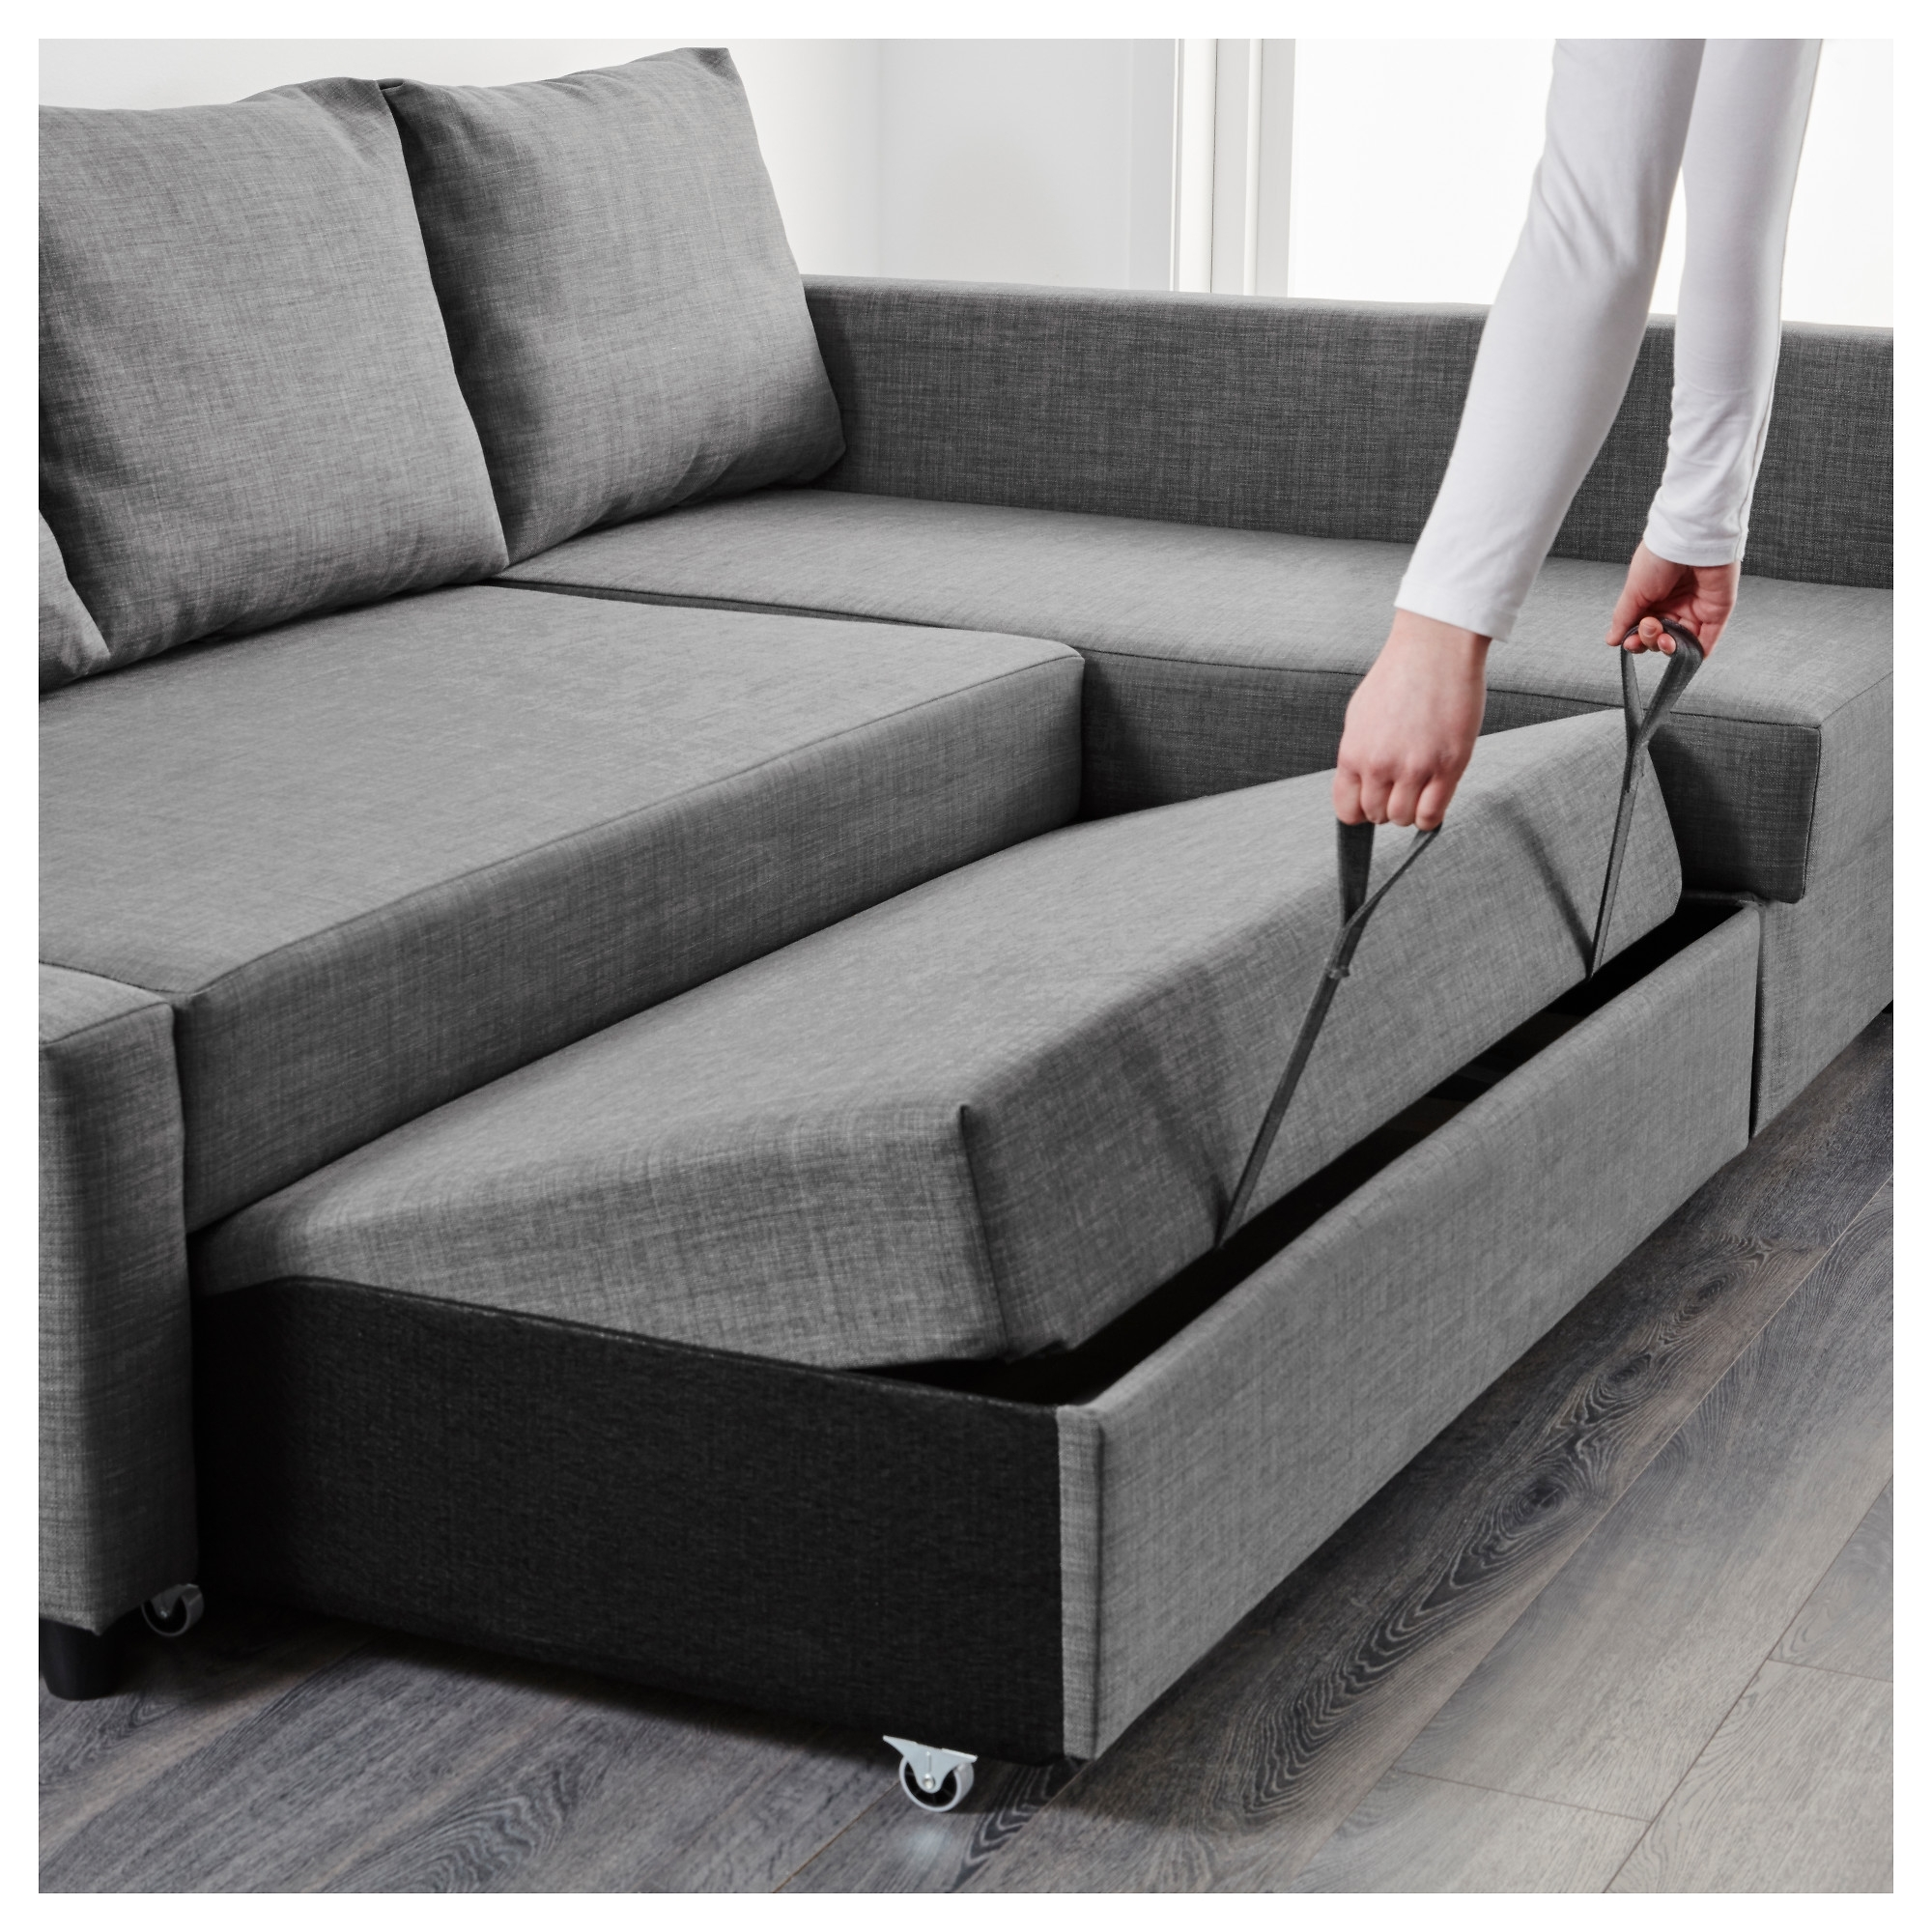 Grey Sofas With Chaise Throughout Most Current Friheten Corner Sofa Bed With Storage Skiftebo Dark Grey – Ikea (Gallery 11 of 15)